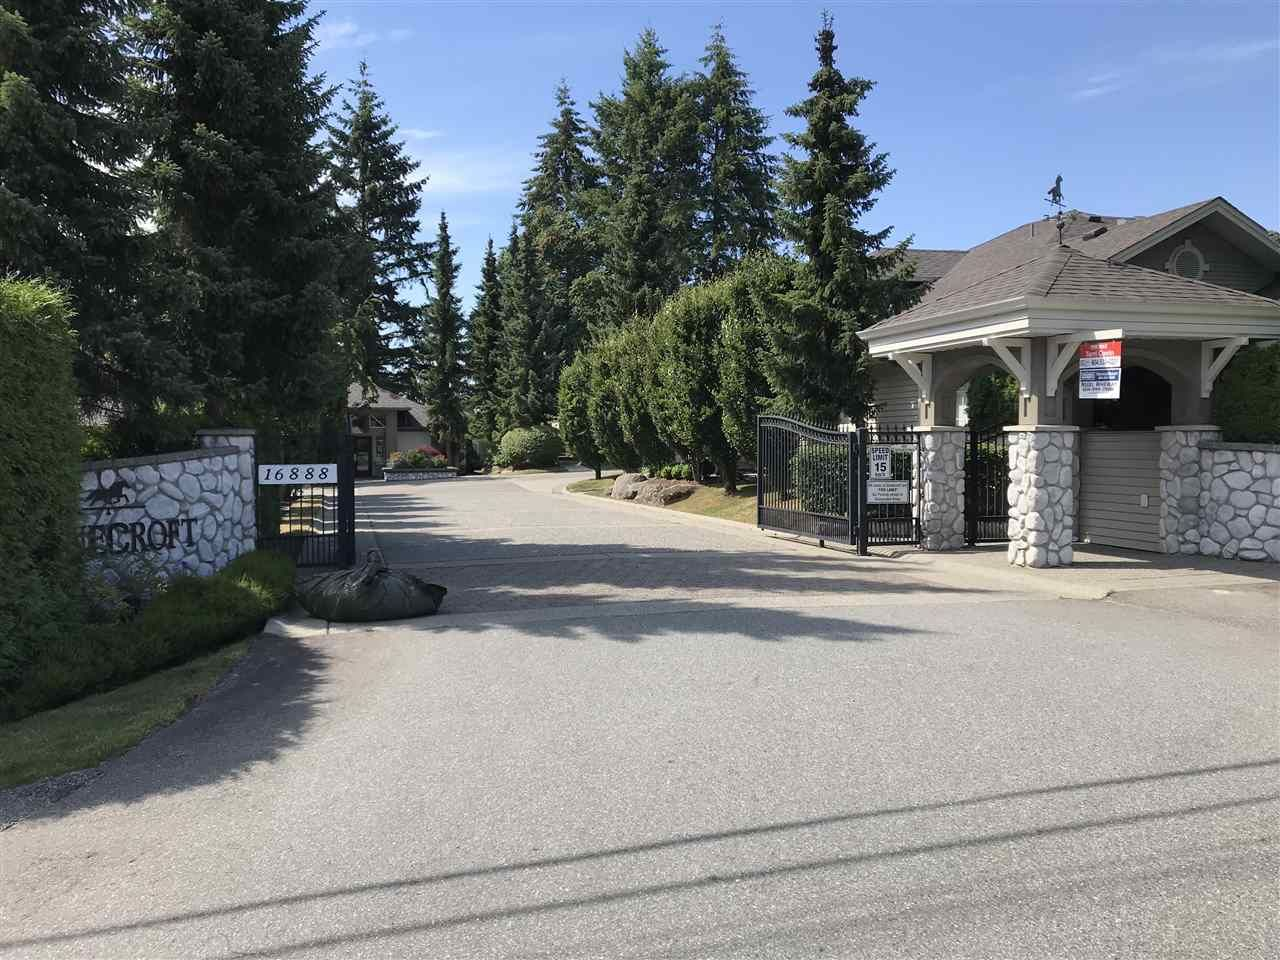 """Main Photo: 22 16888 80 Avenue in Surrey: Fleetwood Tynehead Townhouse for sale in """"Stonecroft"""" : MLS®# R2298673"""